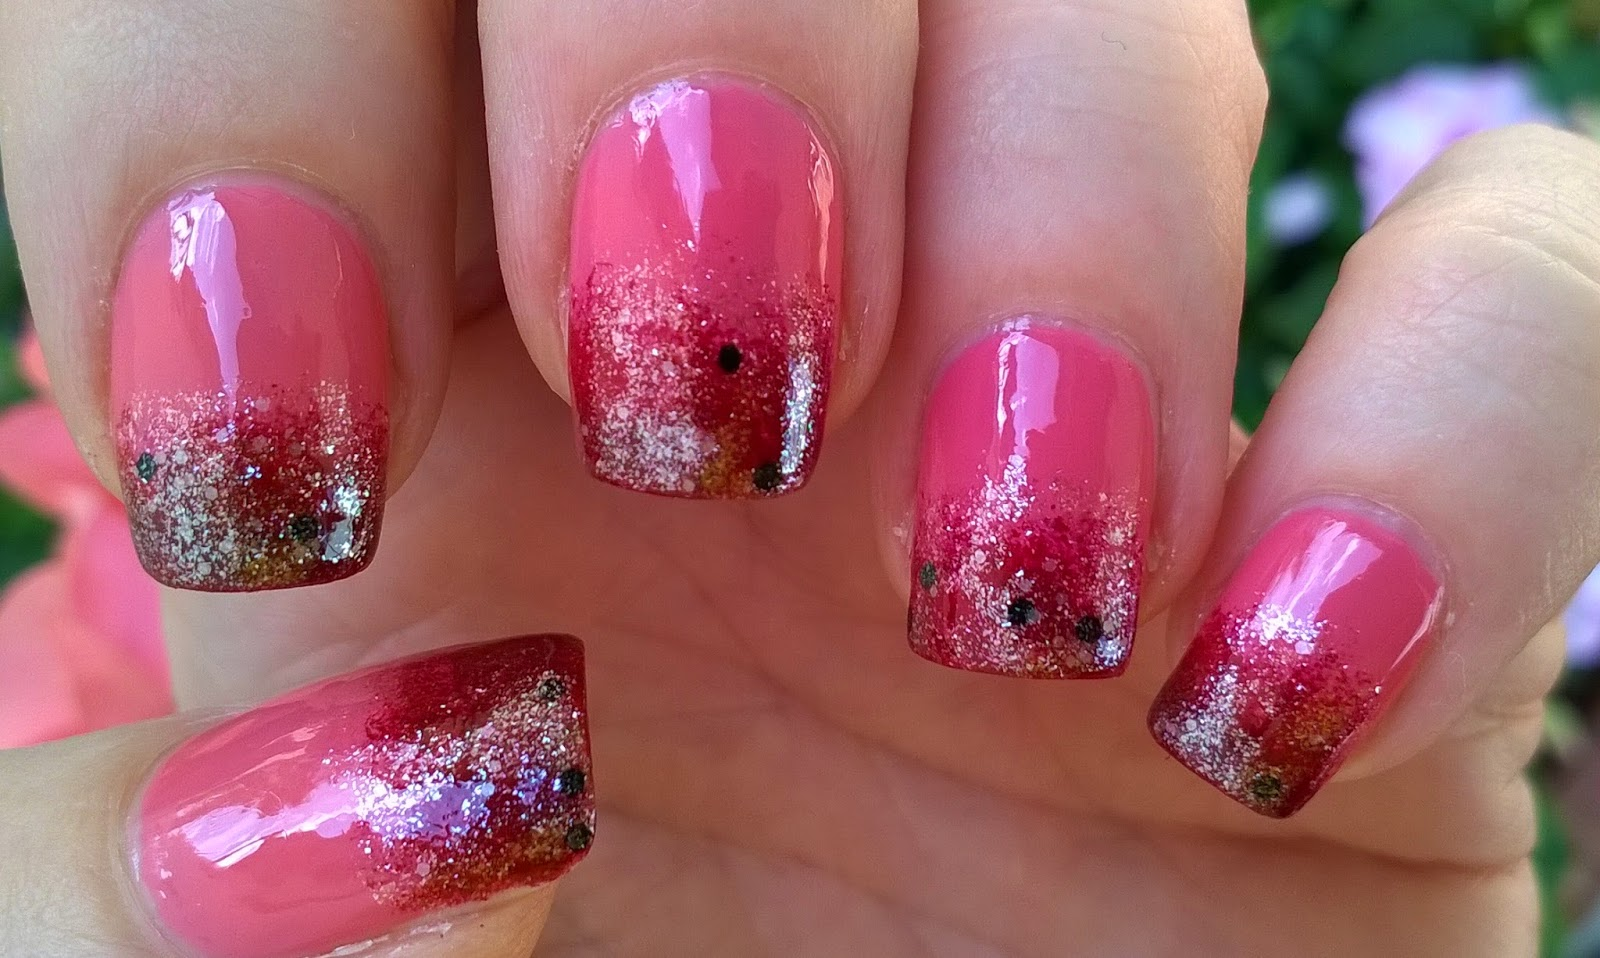 Life World Women: Pink Ombre Nail Art With Glitter Nail Polish